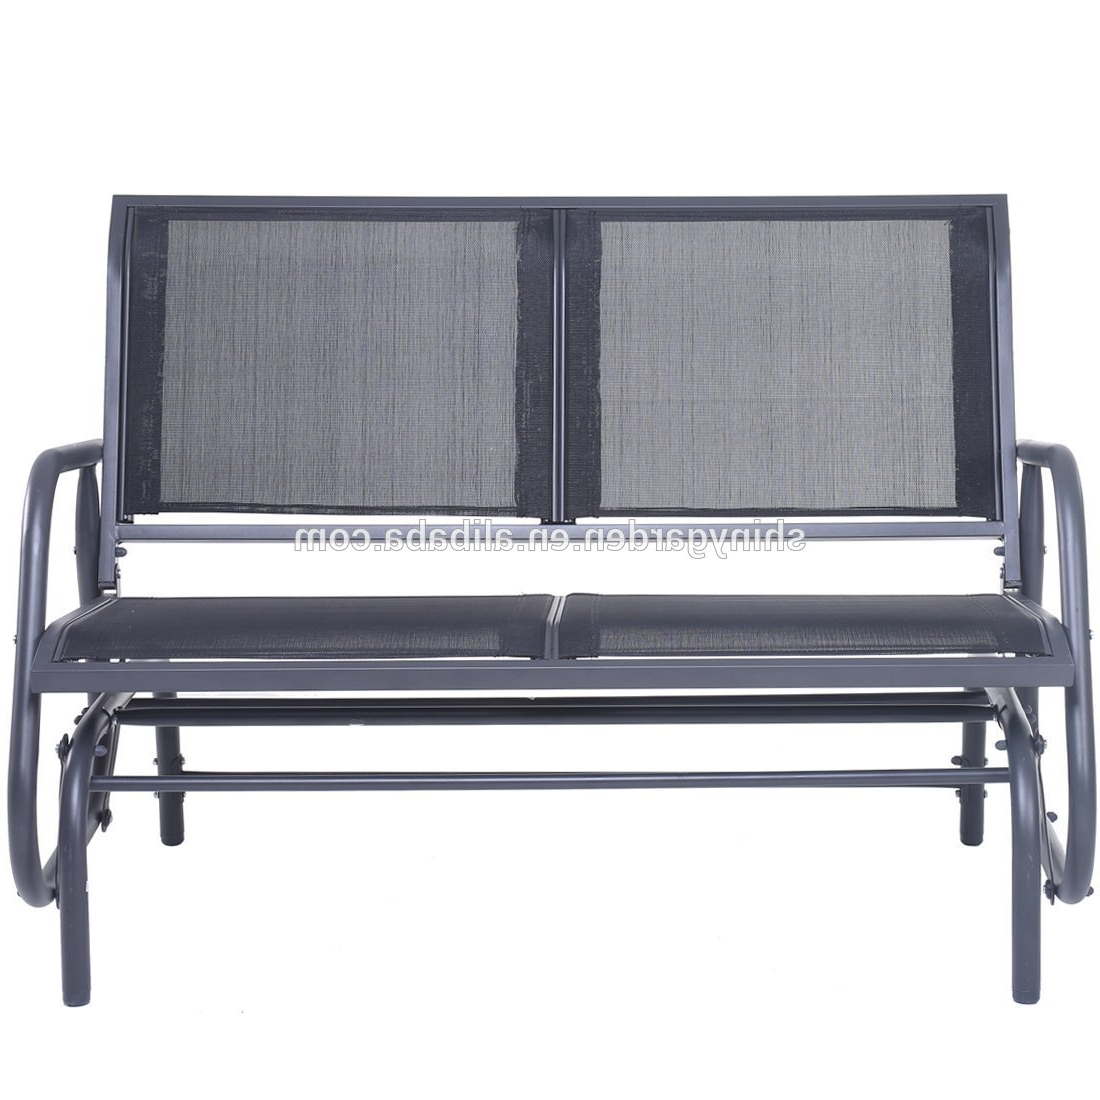 Outdoor Steel Patio Swing Glider Benches For Favorite Outdoor Swing Glider Chair,patio Bench For 2 Person,garden Rocking Seating – Buy Swing Glider Chair Product On Alibaba (View 14 of 30)